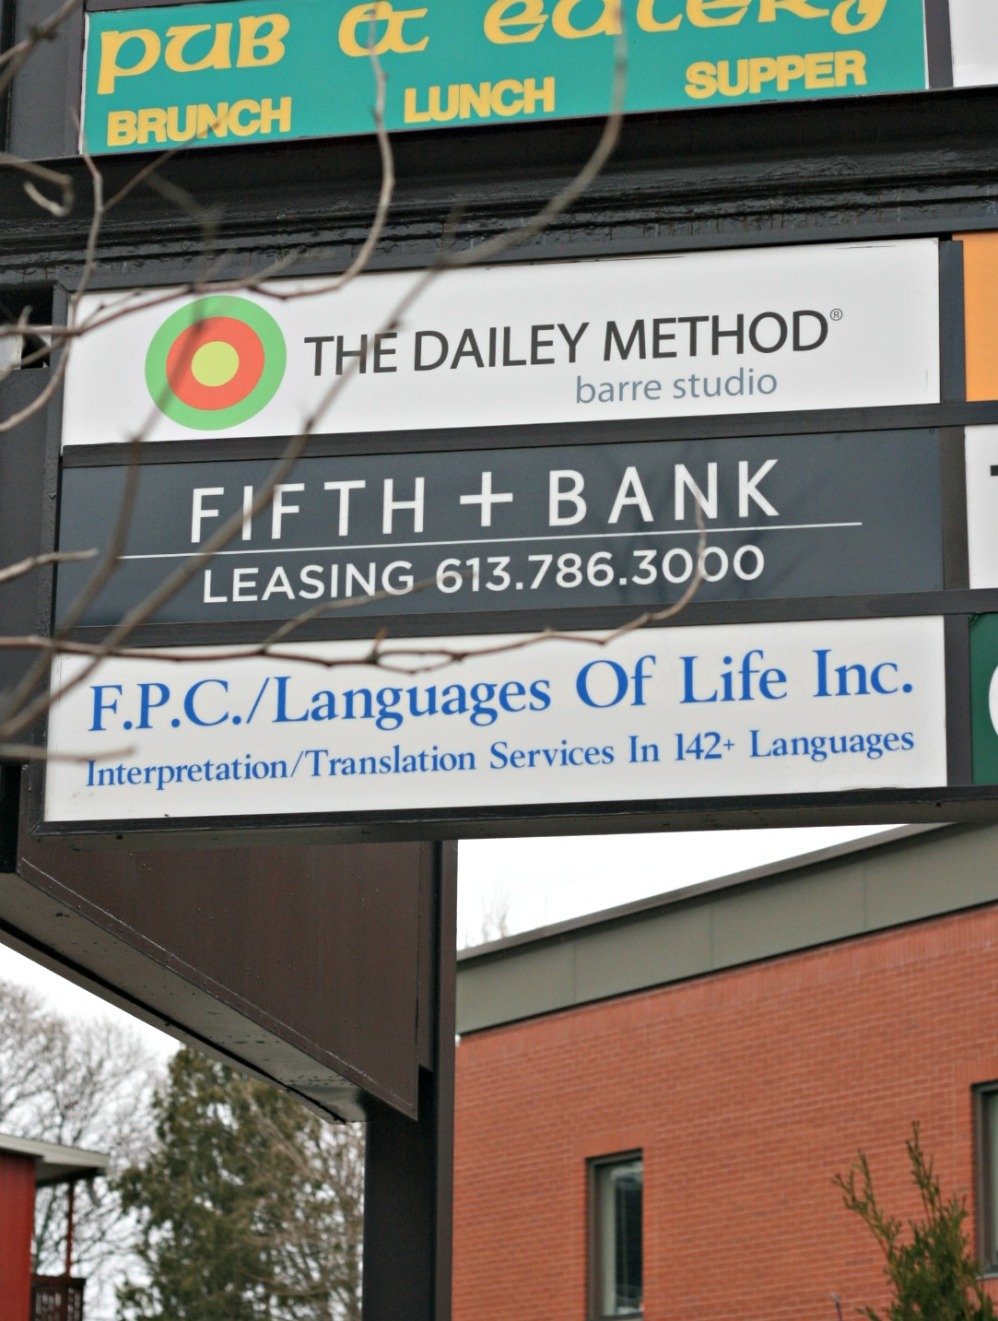 The Dailey Method sign